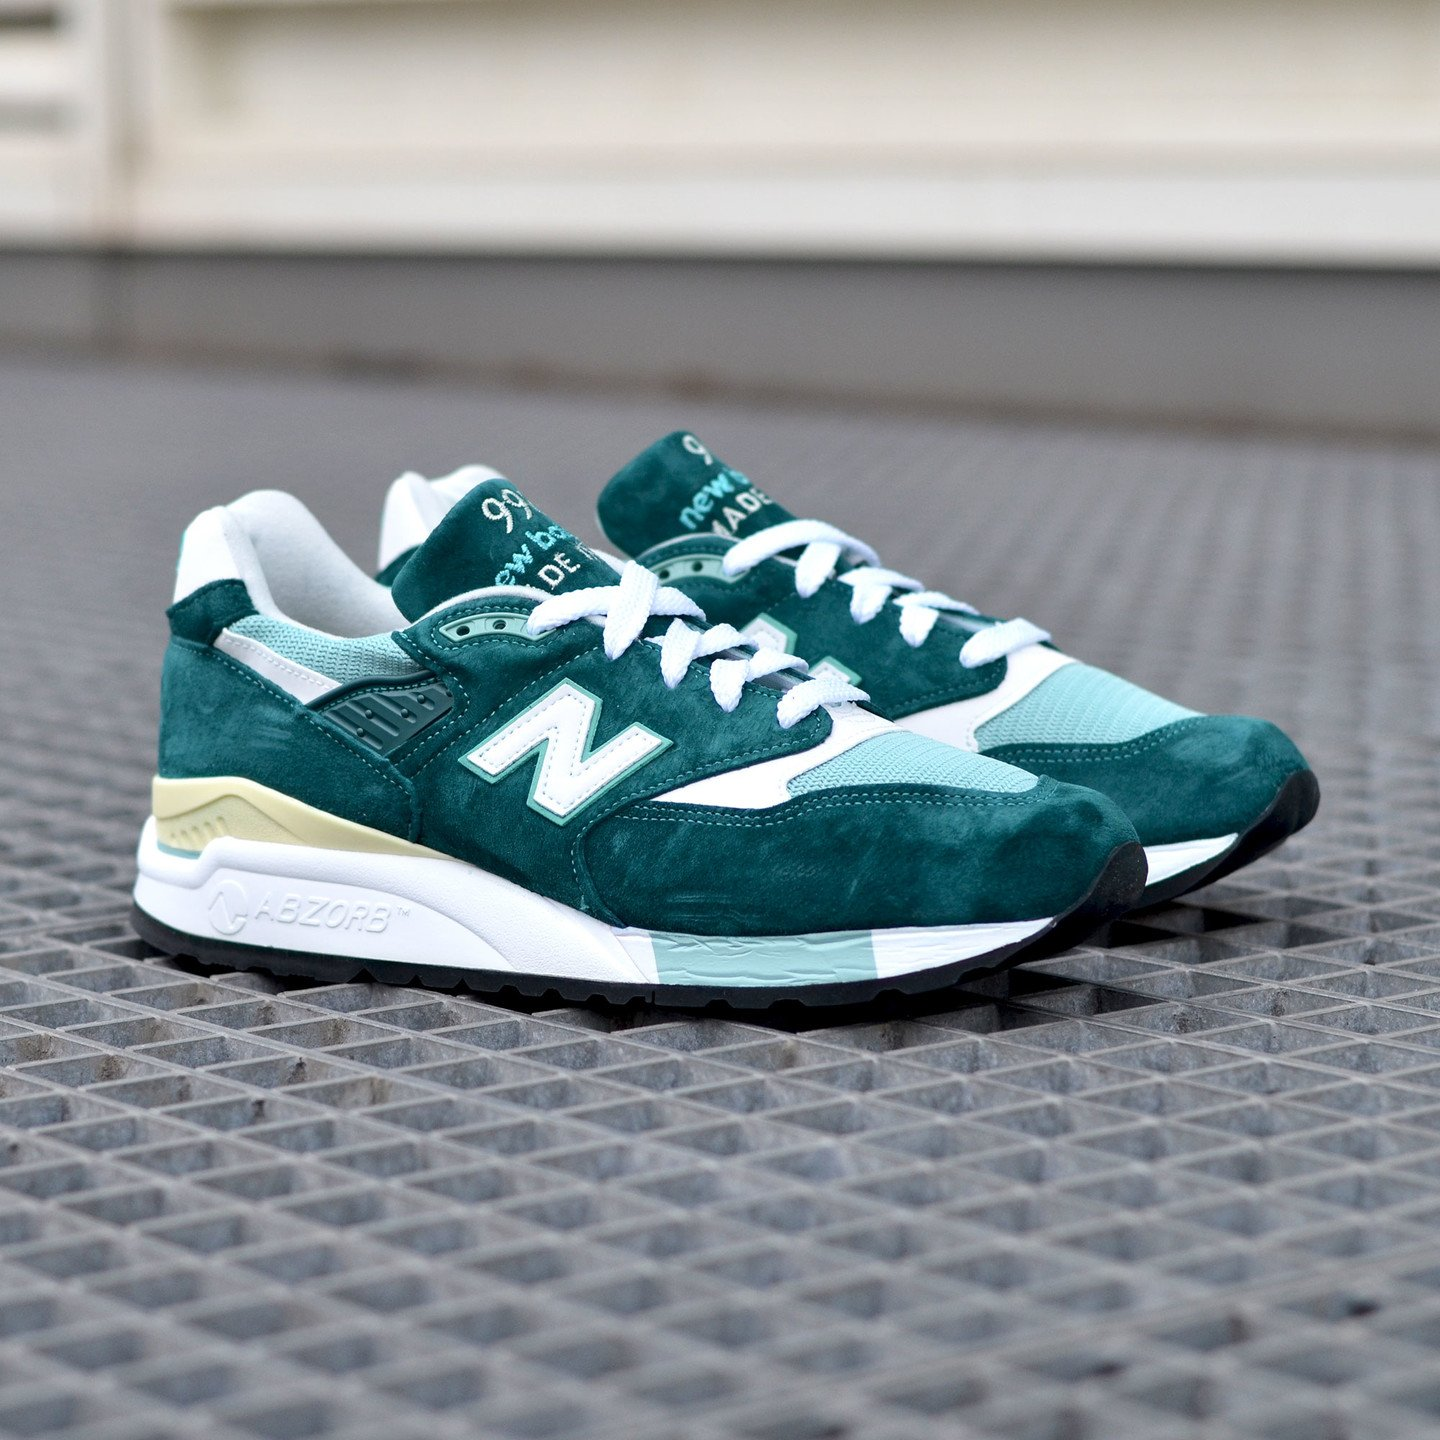 New Balance M998 Made in USA Sea Green / White M998CSAM-42.5